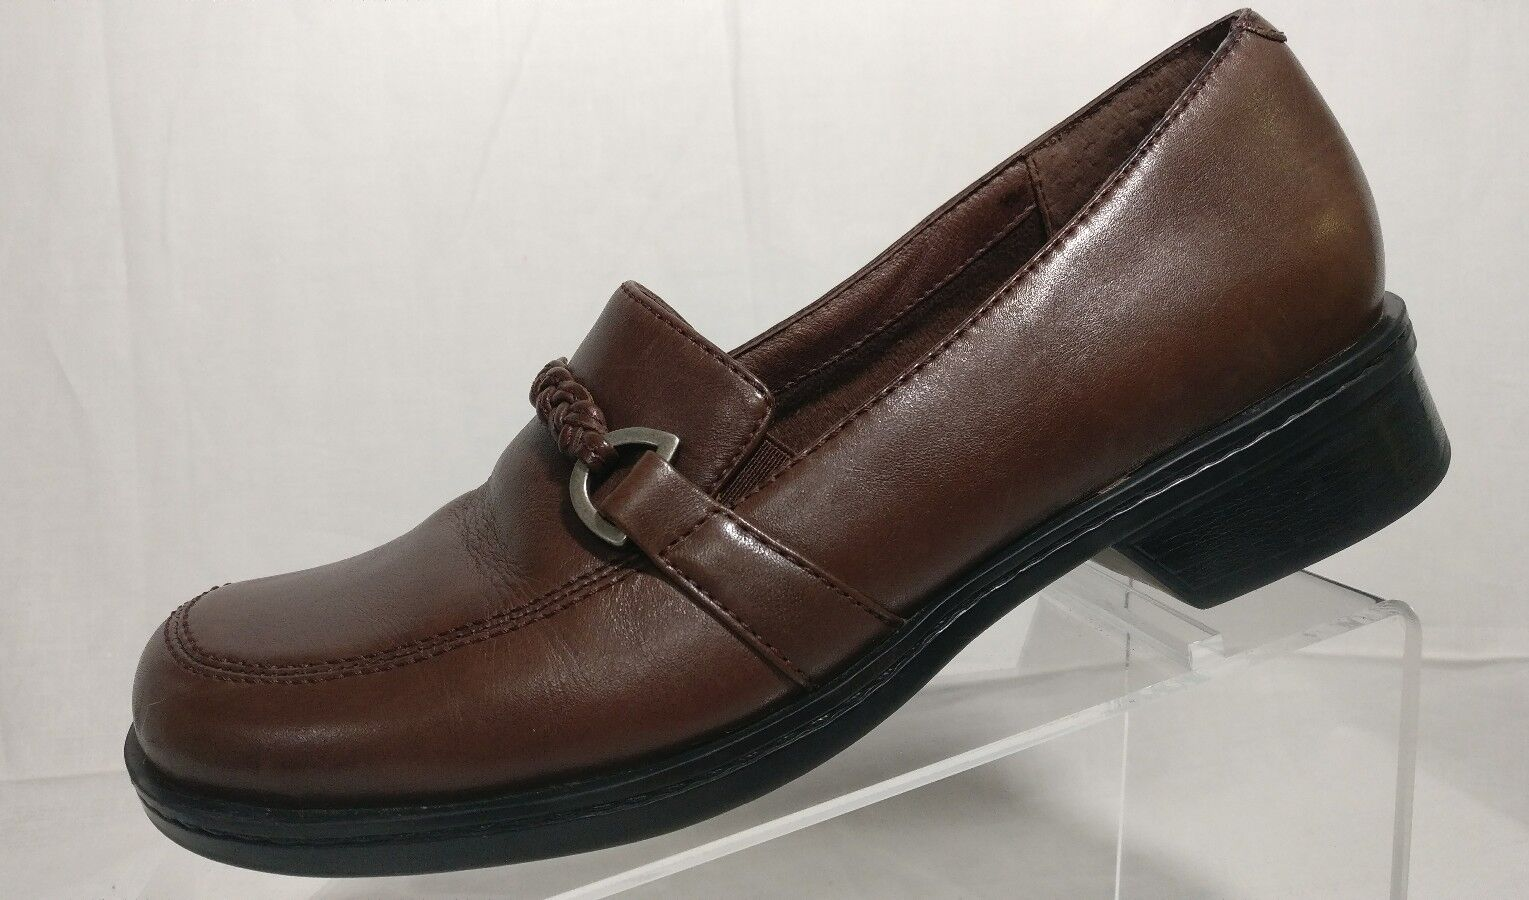 Clarks Brown Leather Silver Horsebit Mary Jane Dress Loafers shoes Women's 7.5 M